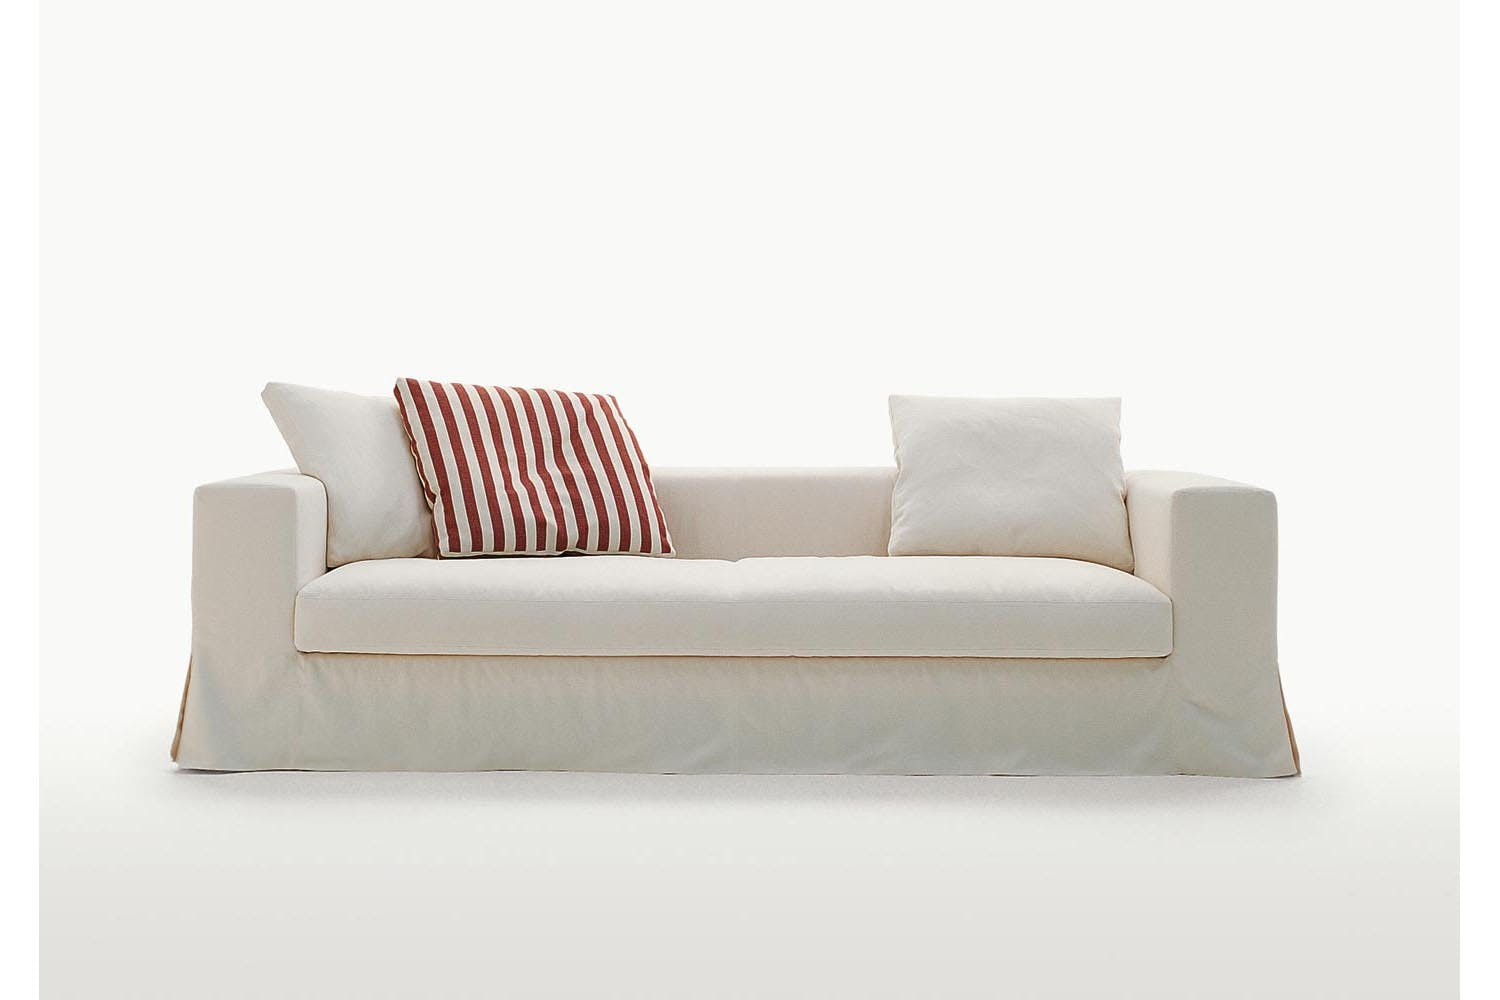 Simplex Sofa With Slip Cover By Antonio Citterio For